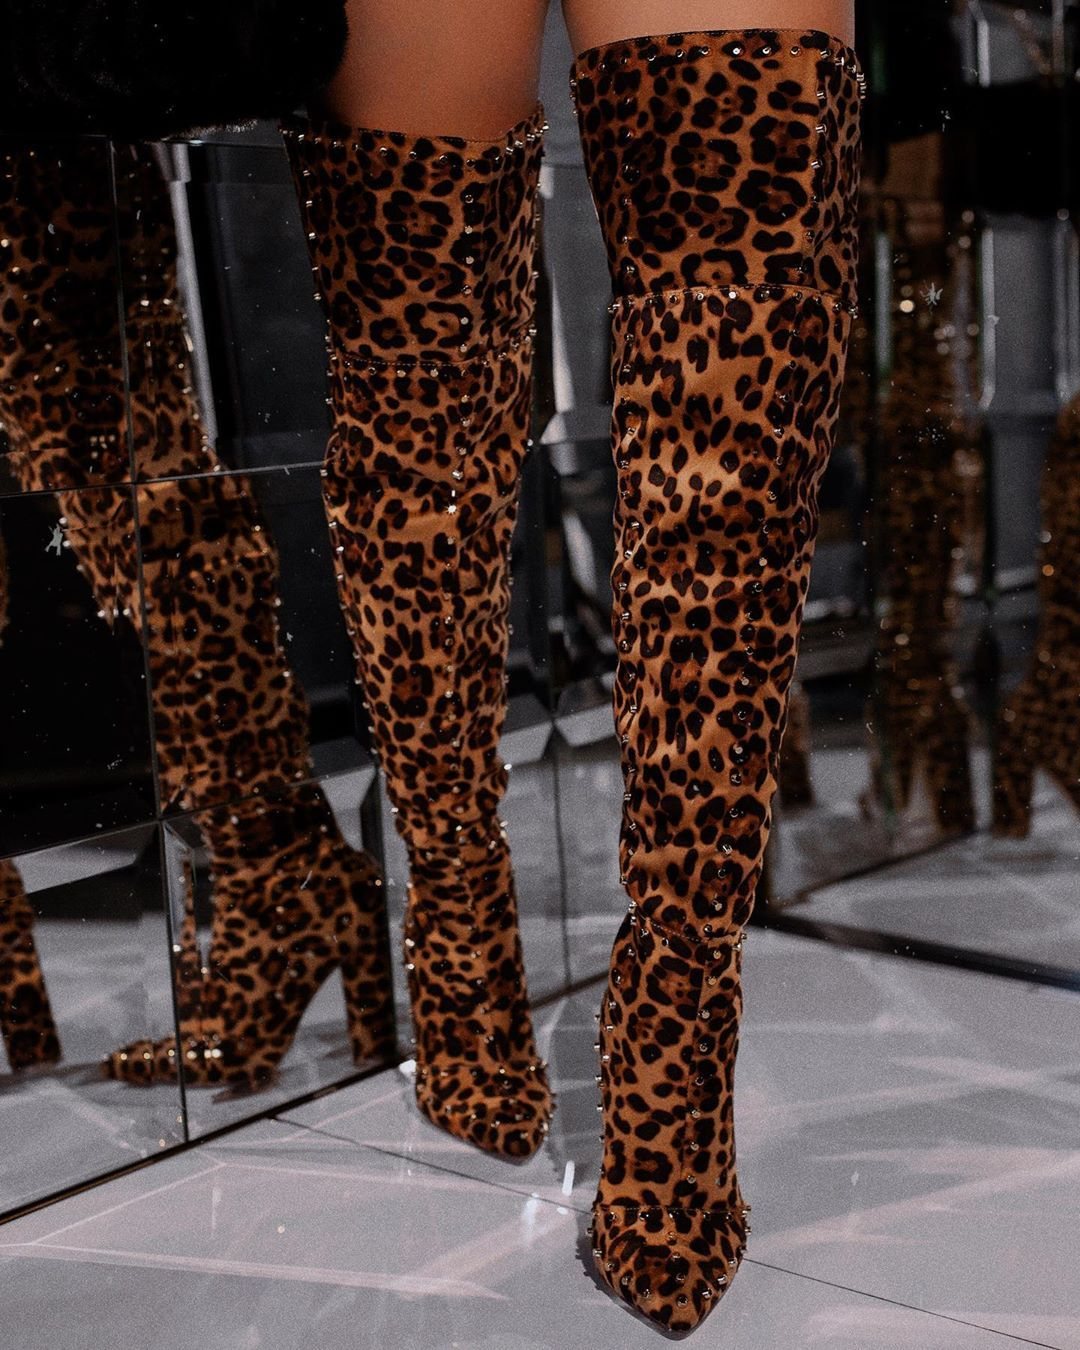 Lot New Animal Print Stilletos Spiked Knee High Boots Faux Leather Suede Shoes